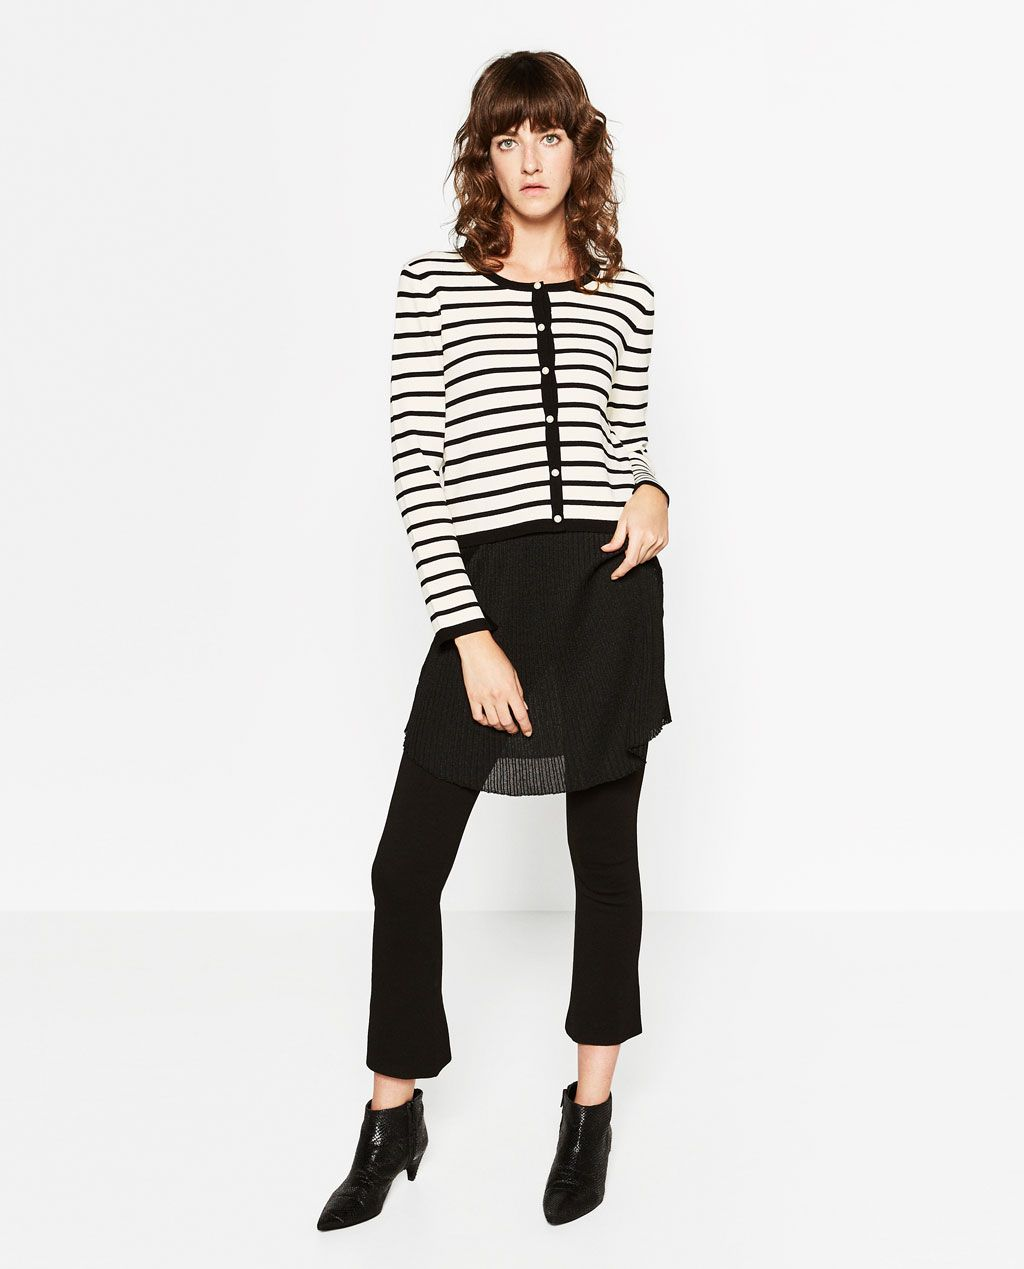 Cropped Cardigan Stripes | ZARA | Lines | Pinterest